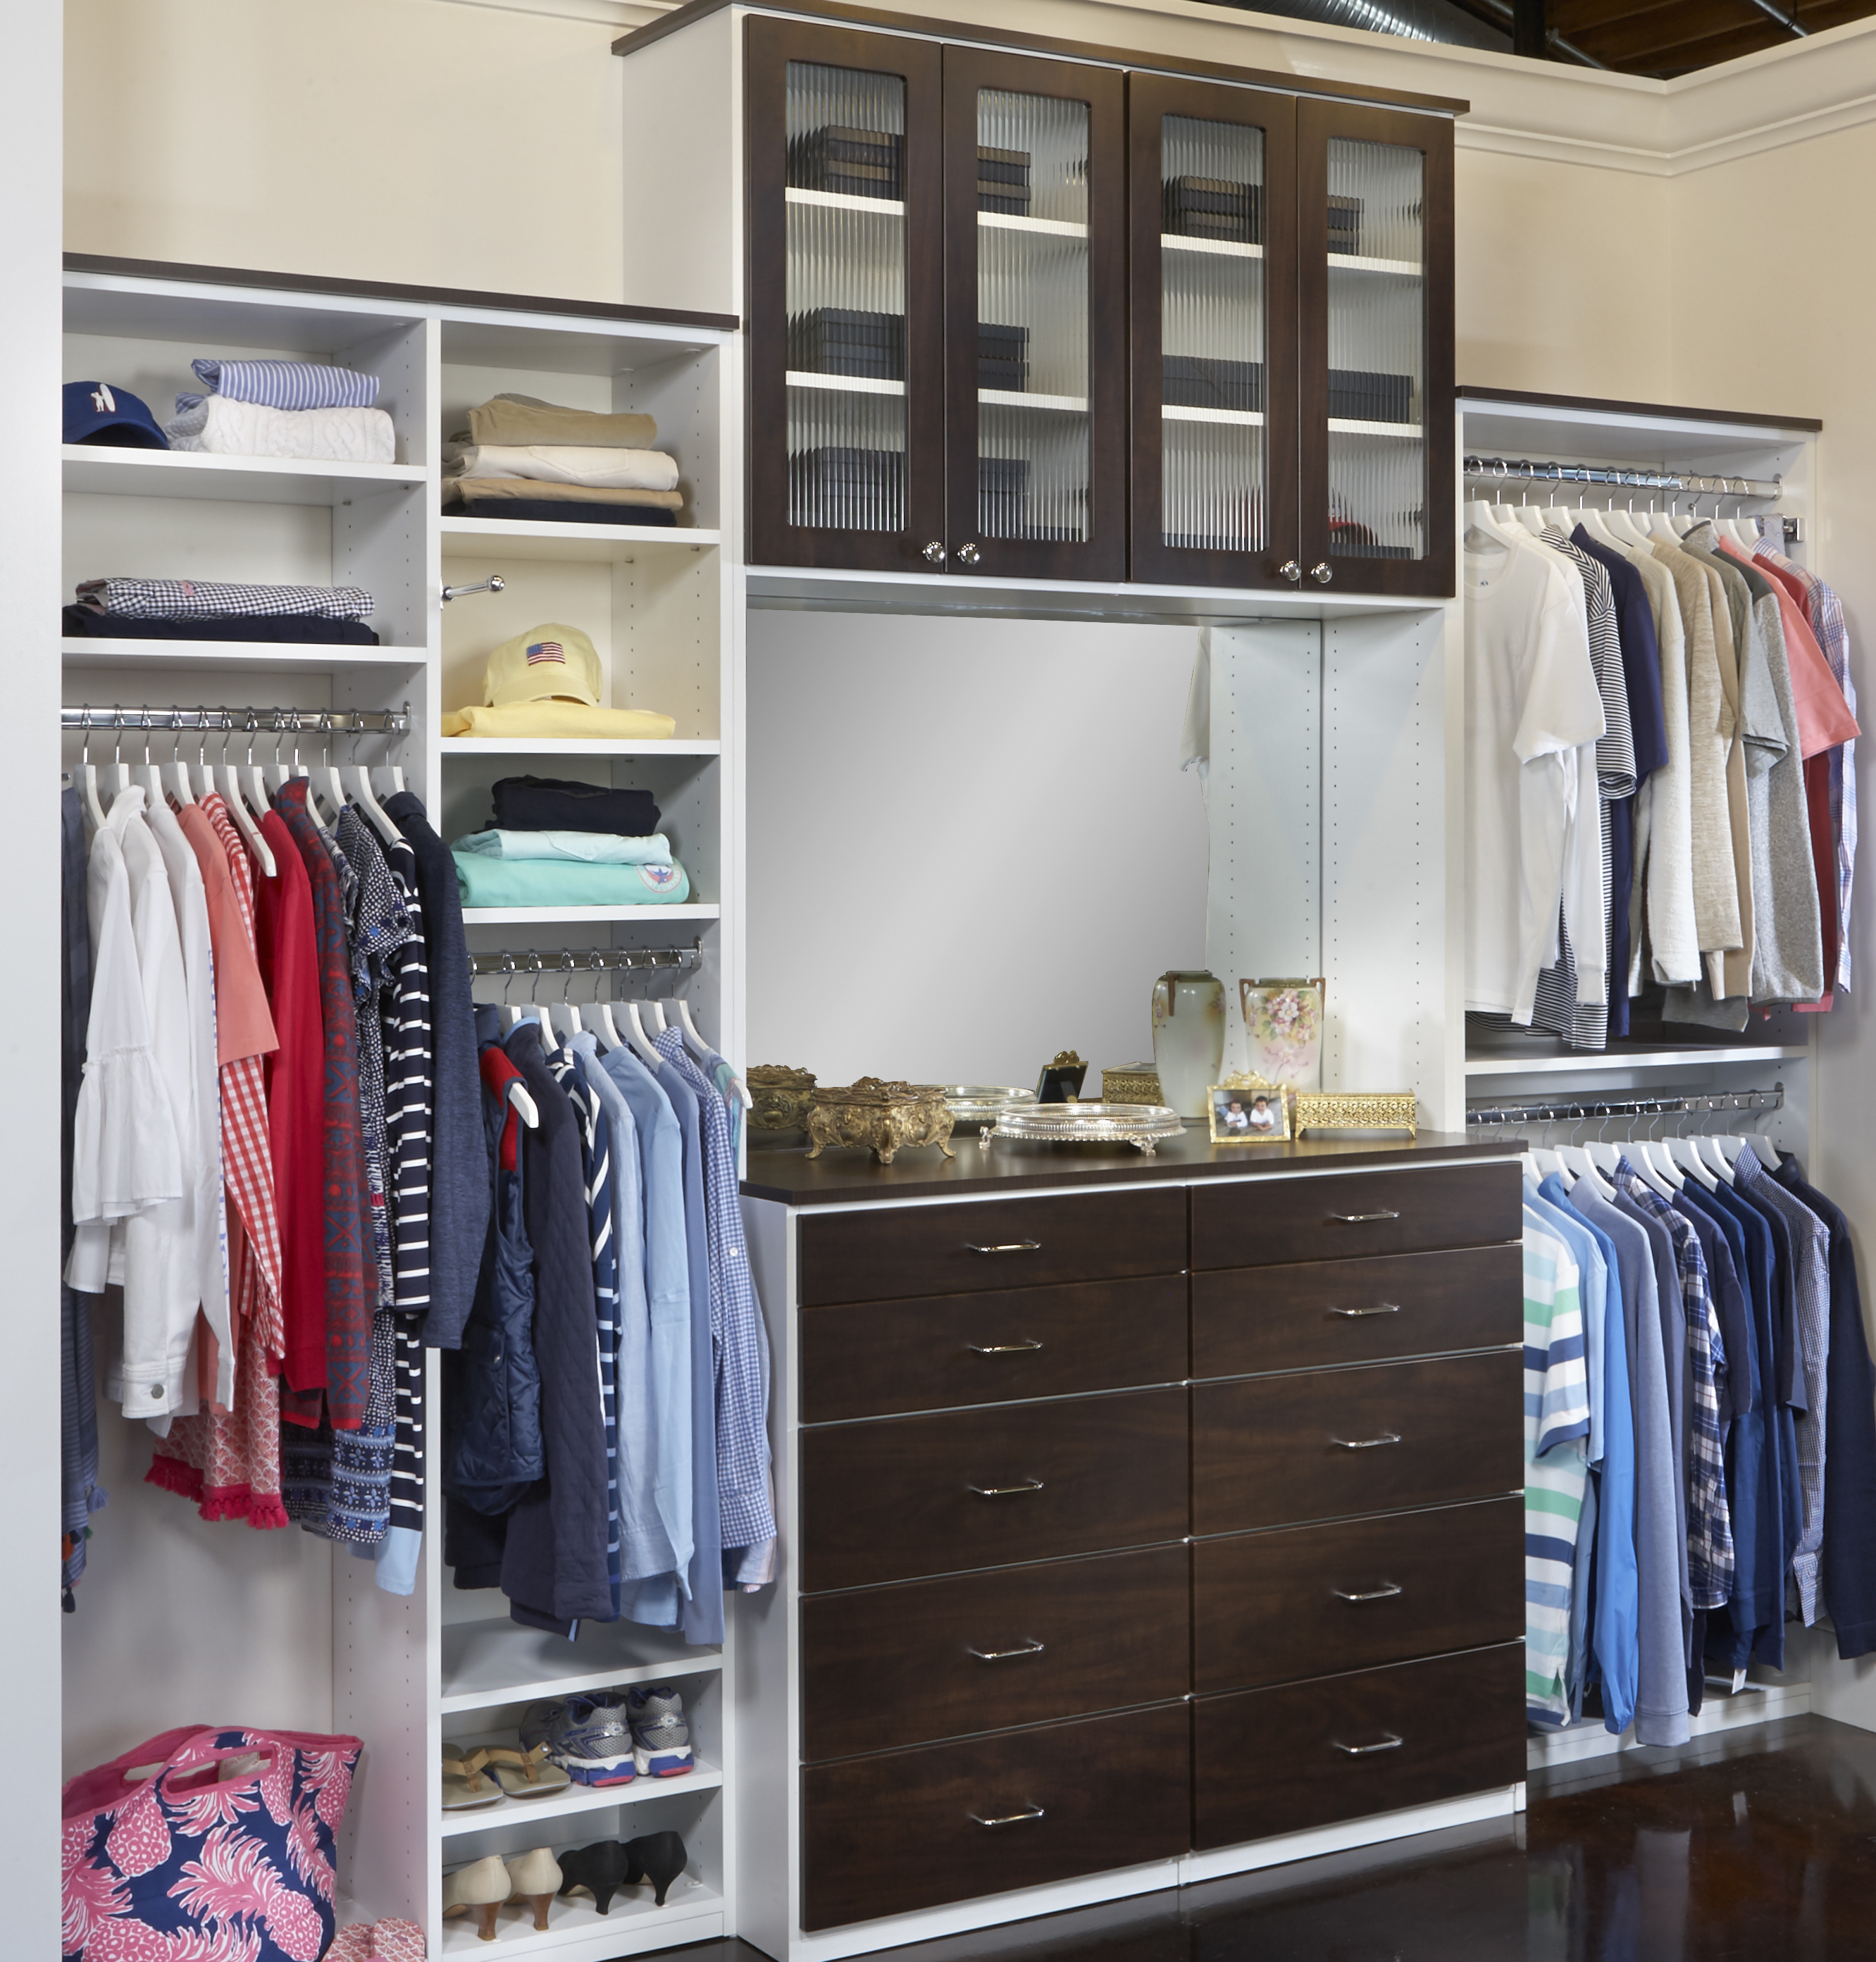 ... Fully Adjustable, Saint Louis Closet Co. Floor Based Closet System With  Glass Doors And Drawers. Add A Mirror And Vanity Shelf To Turn Your Closet  Into ...